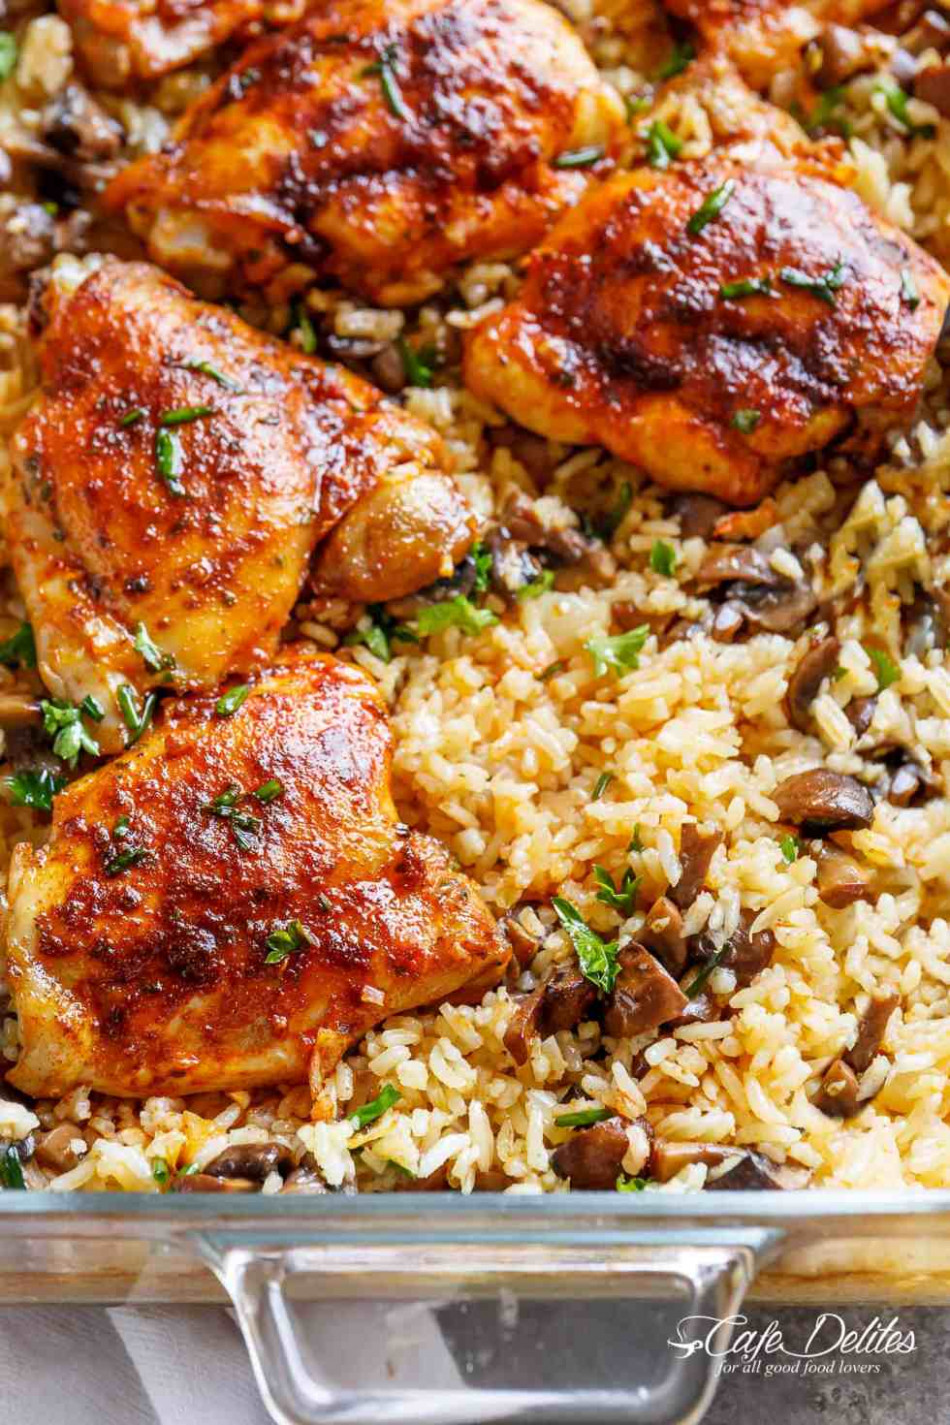 Oven Baked Chicken And Rice - Cafe Delites - baked recipes dinner